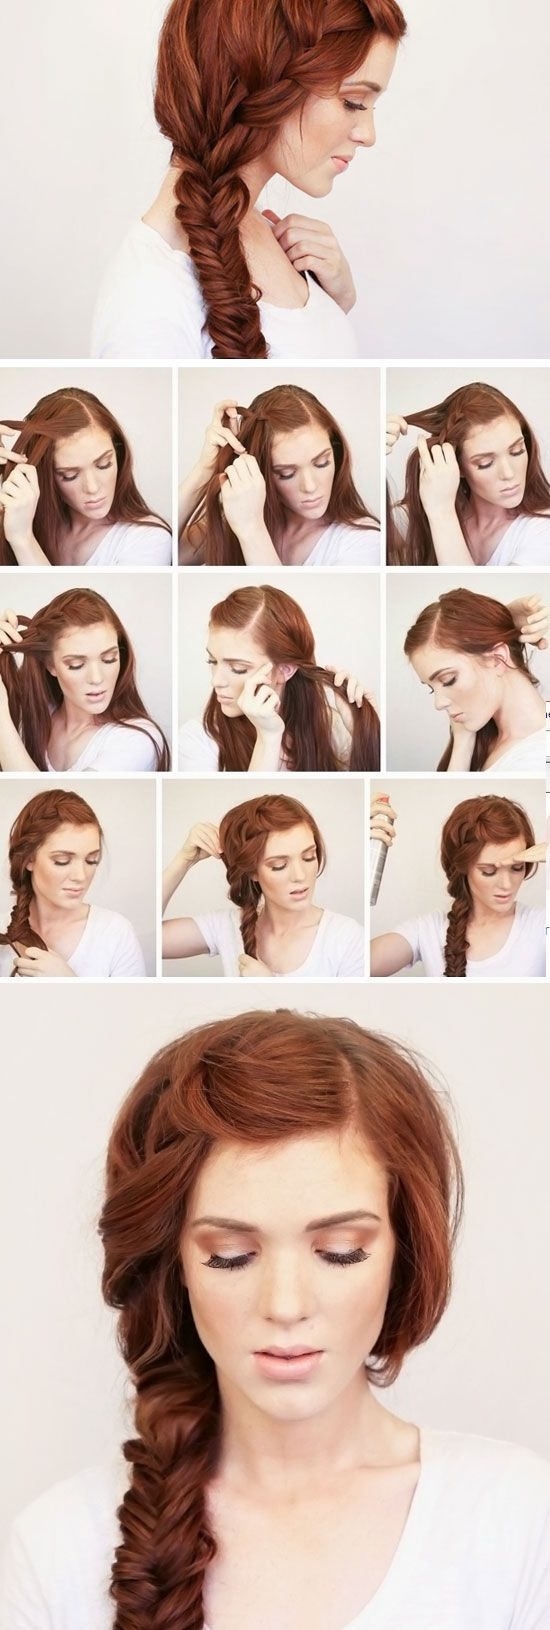 Fabulous 1000 Ideas About Braids Medium Hair On Pinterest Medium Hair Up Short Hairstyles For Black Women Fulllsitofus